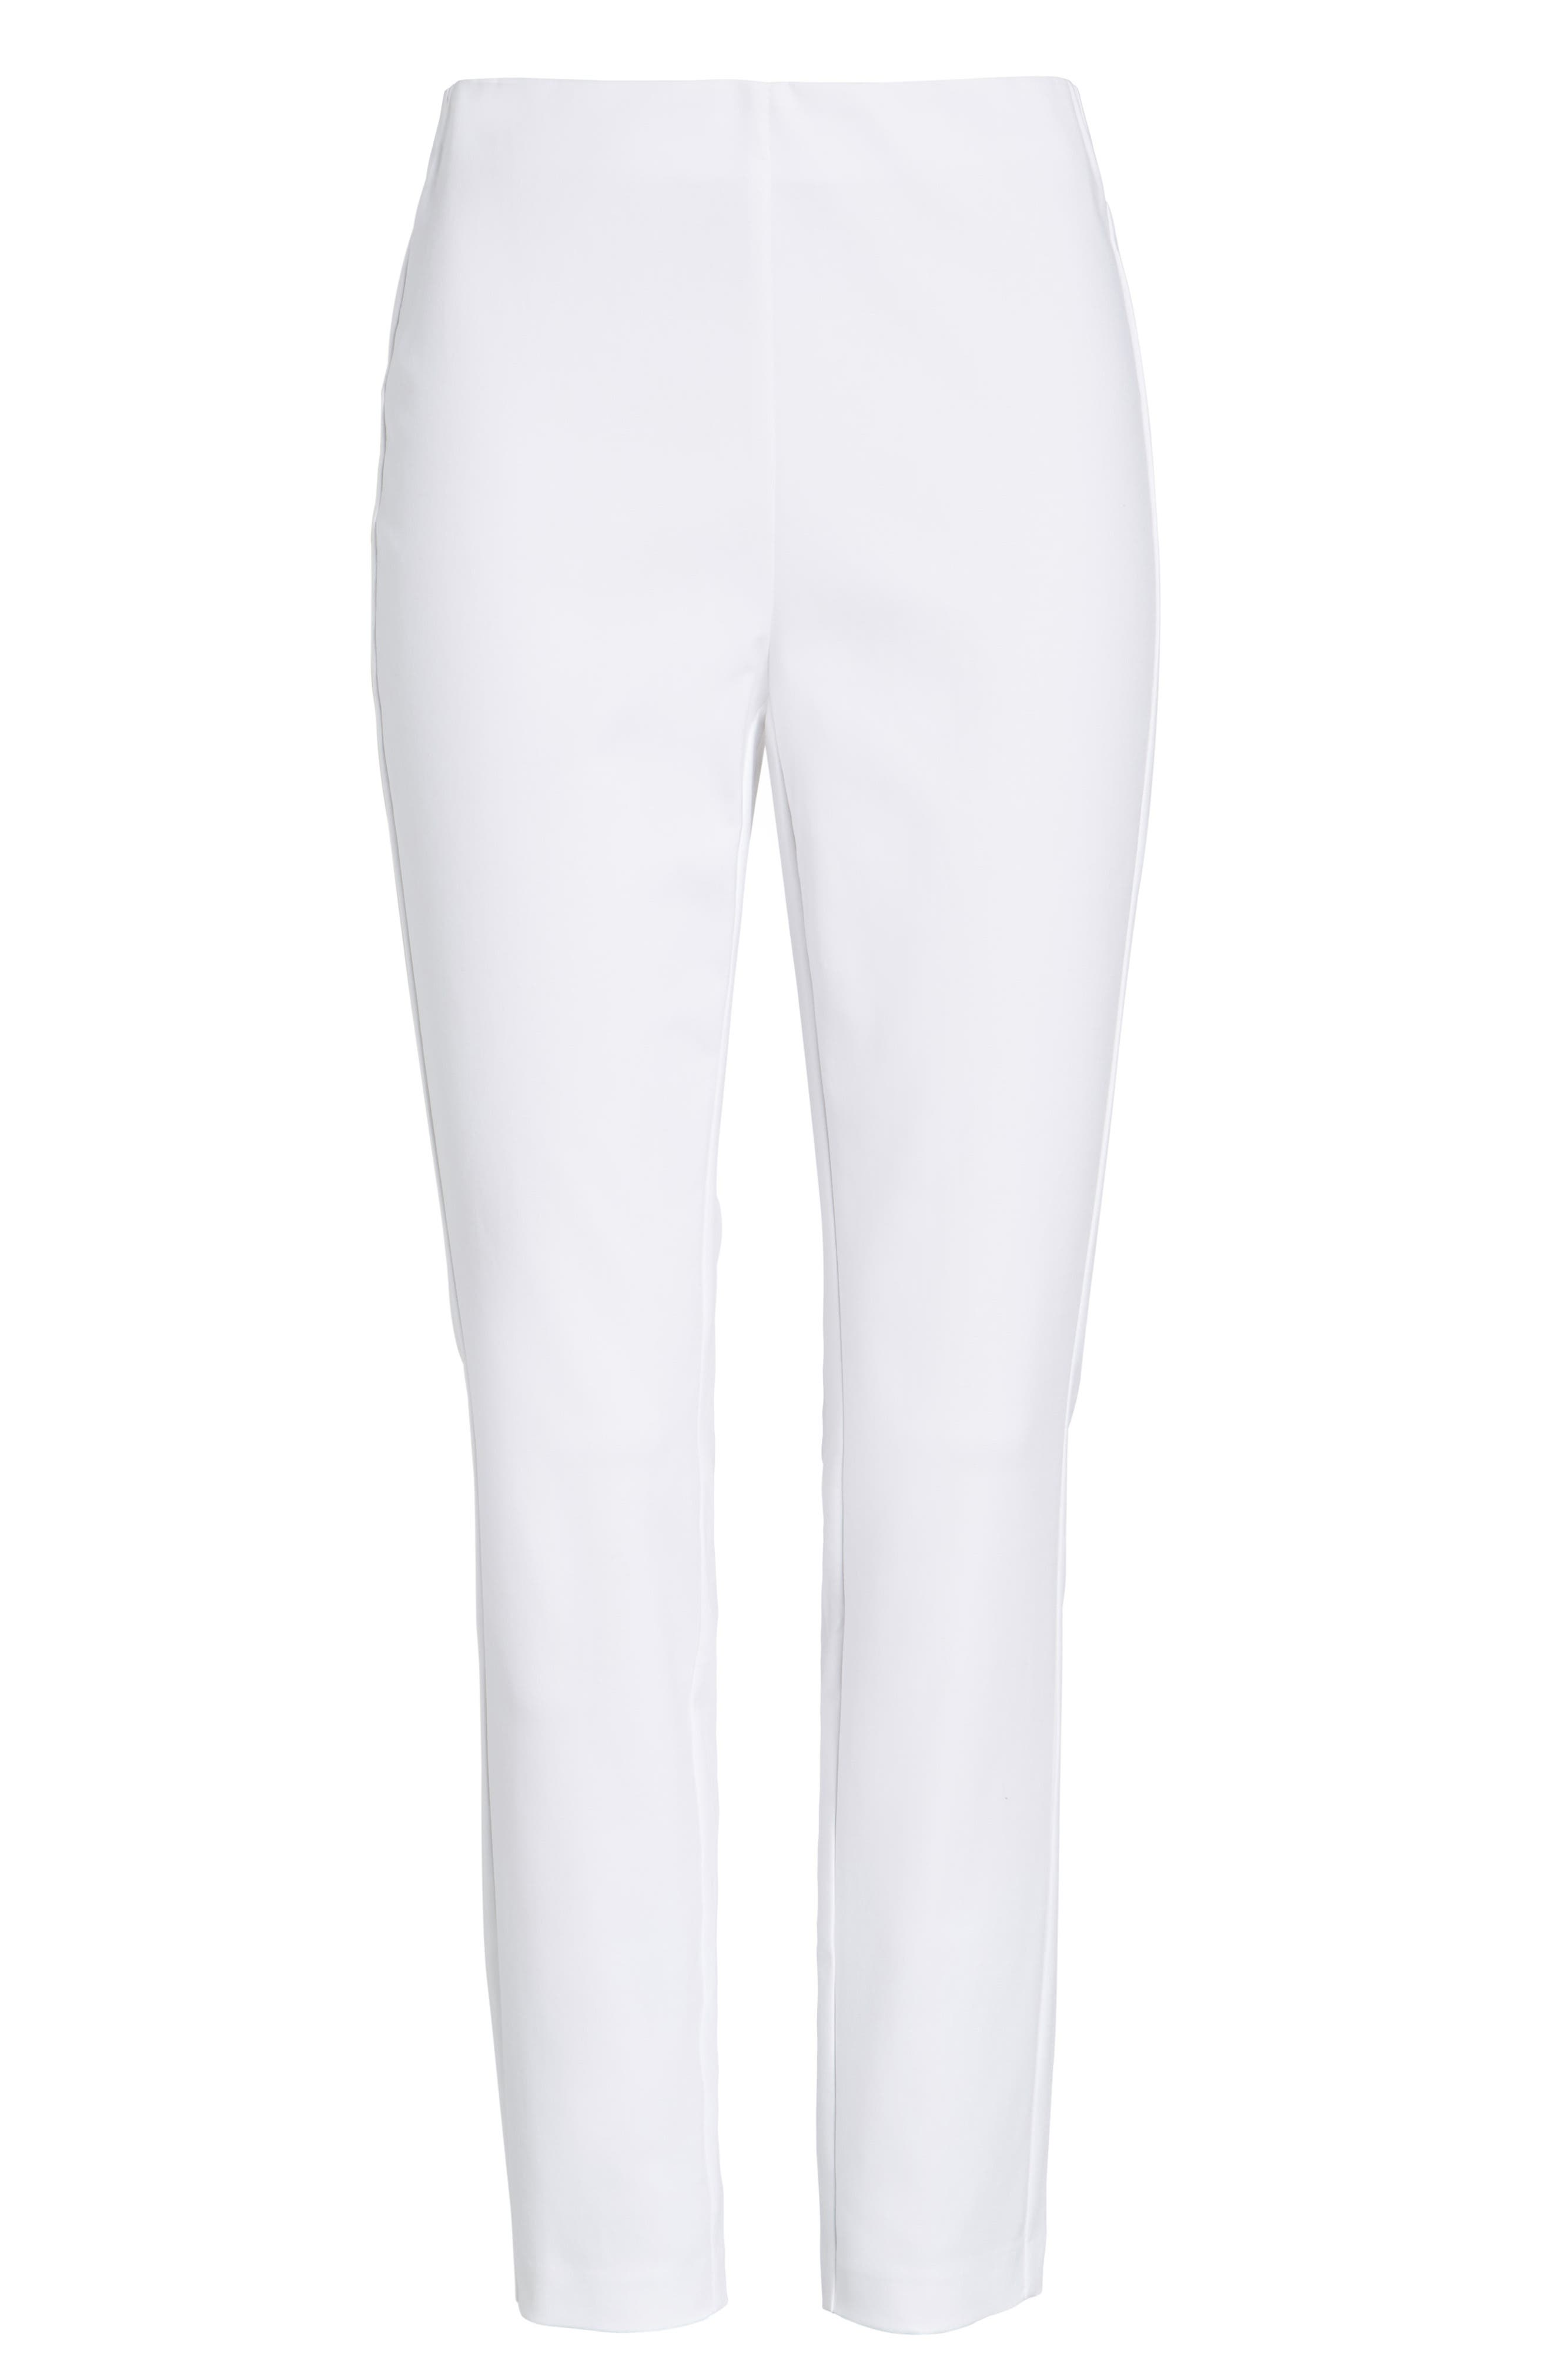 'Simone' Slim Ankle Pants,                             Alternate thumbnail 7, color,                             WHITE